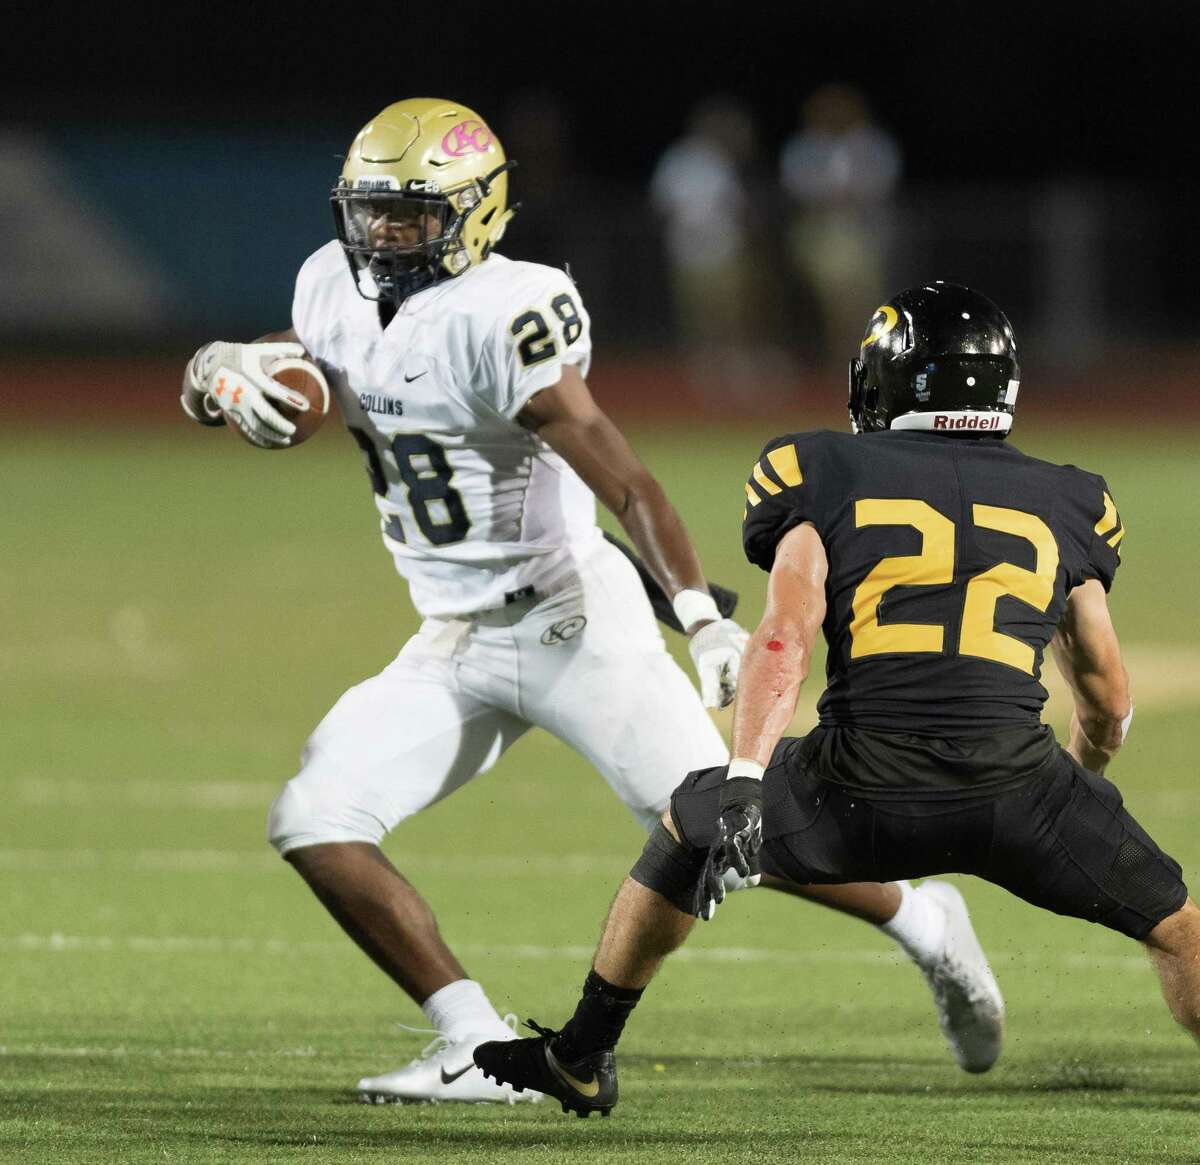 Senior Isaiah Spiller (28) of the Klein Collins Tigers was named District 15-6A Offensive MVP for the second straight year.